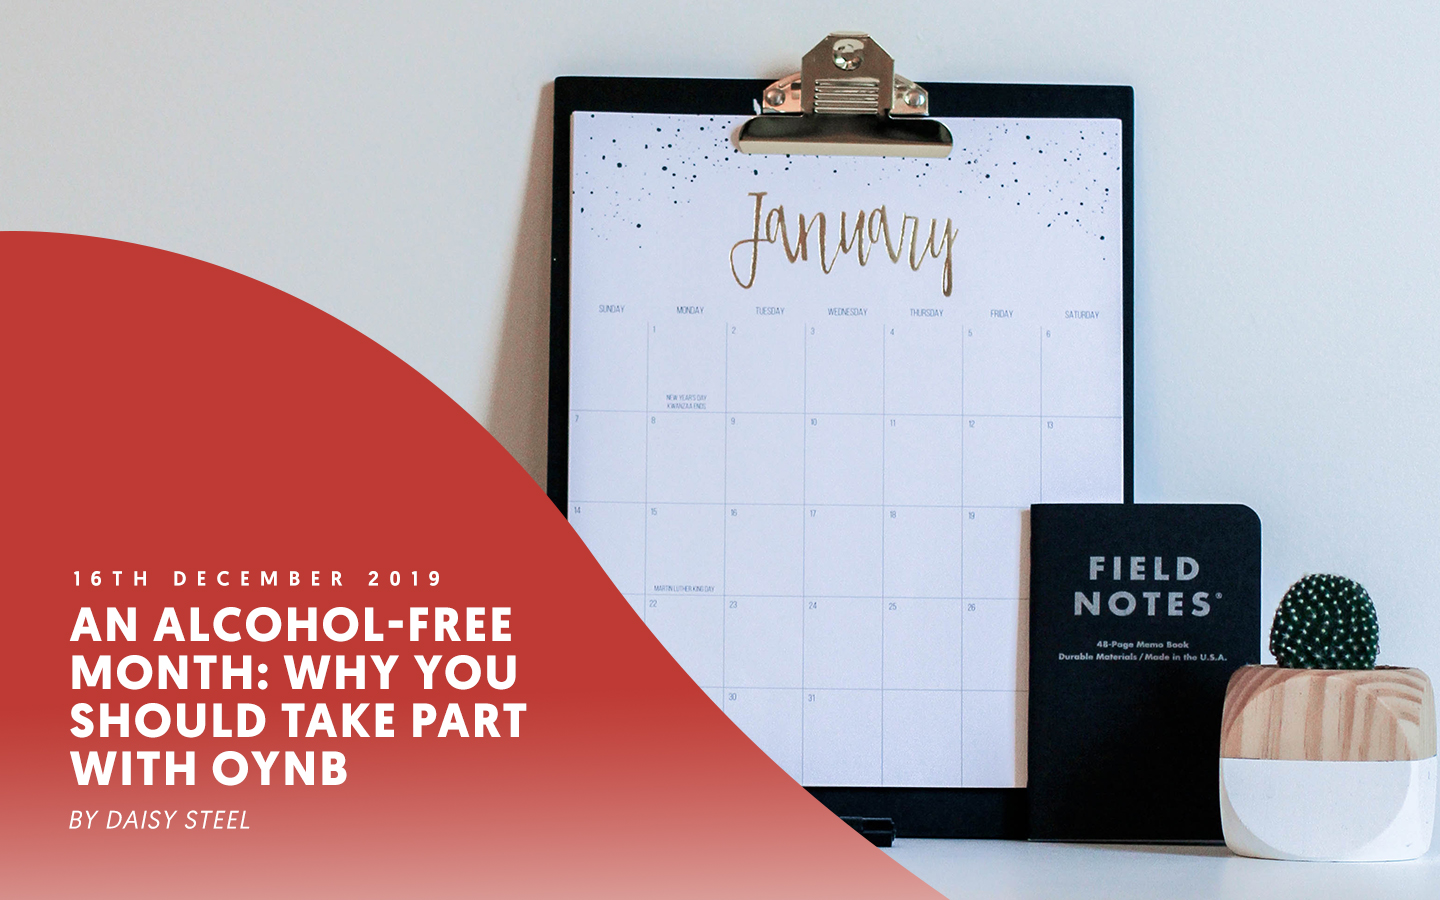 An alcohol-free month: Why you should take part with OYNB – by Daisy Steel